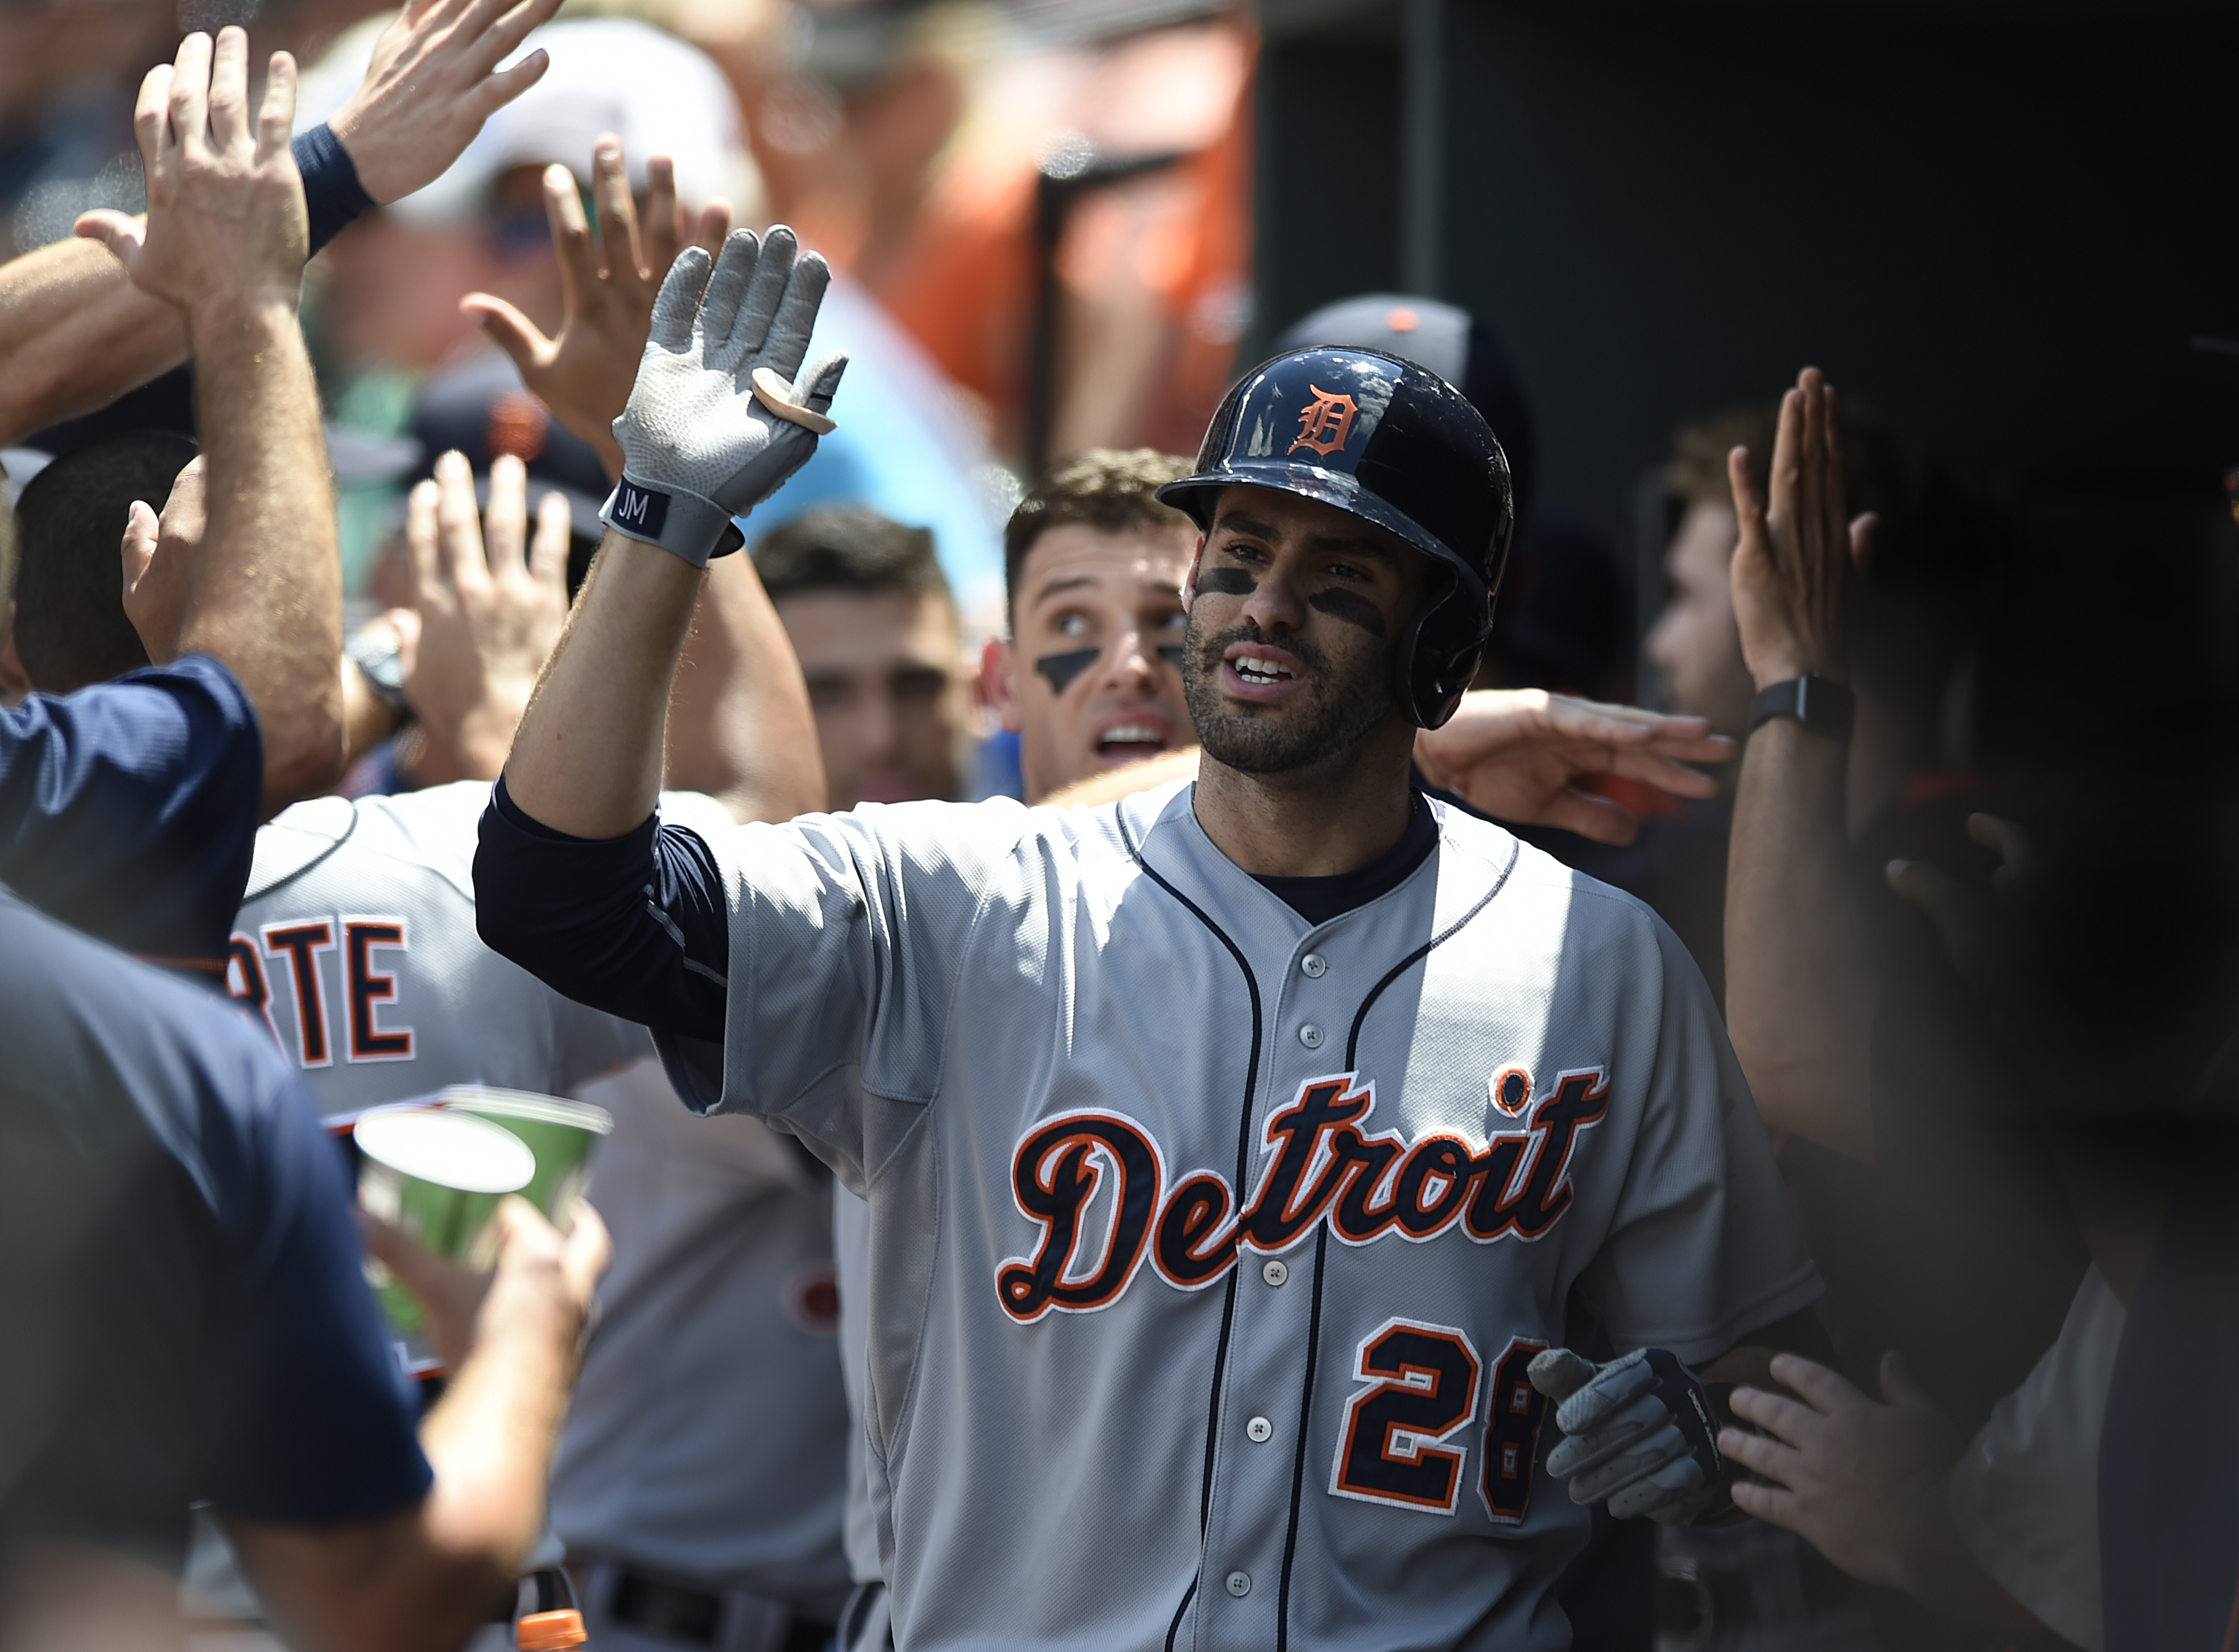 Detroit Tigers' J.D. Martinez is congratulated after hitting a three run home run against the Baltimore Orioles during the first inning of a baseball game, Sunday, Aug. 2, 2015, in Baltimore. (AP Photo/Gail Burton)